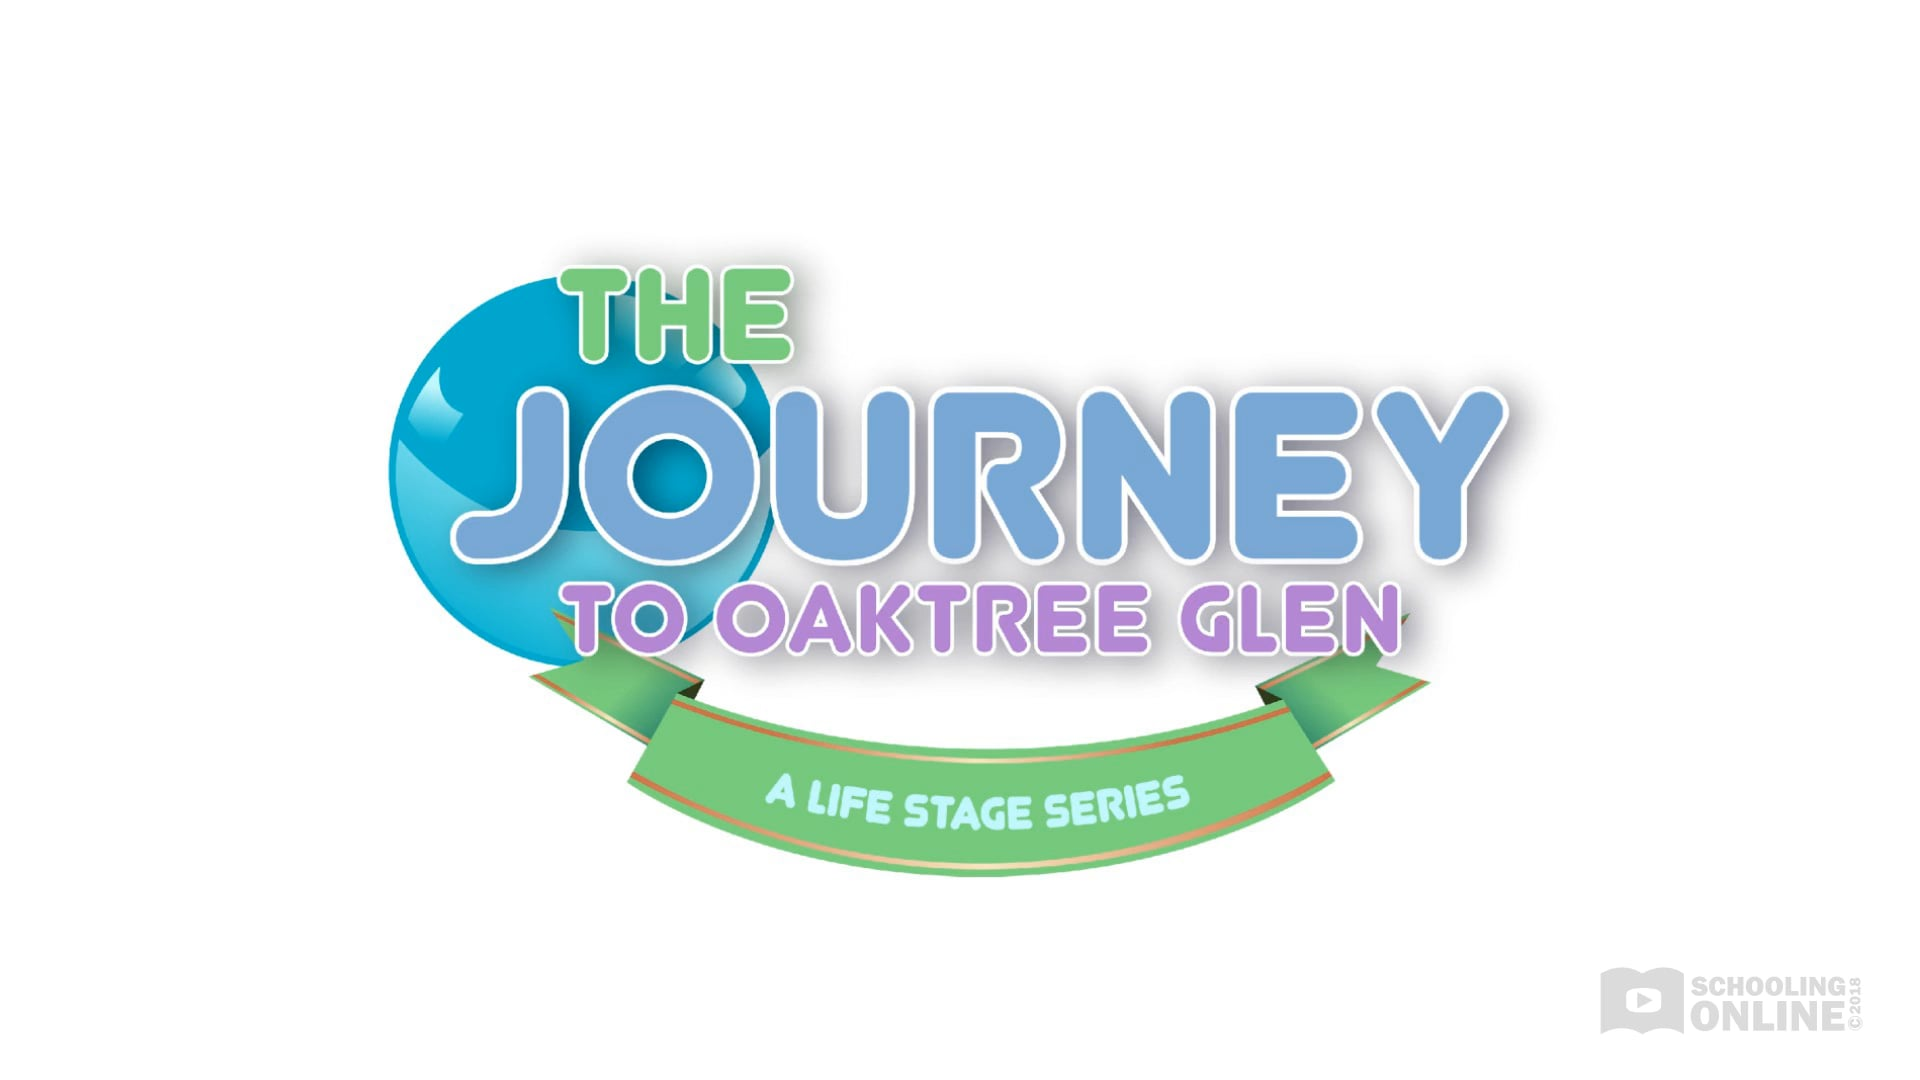 The Journey to Oaktree Glen - The Life Stage Series